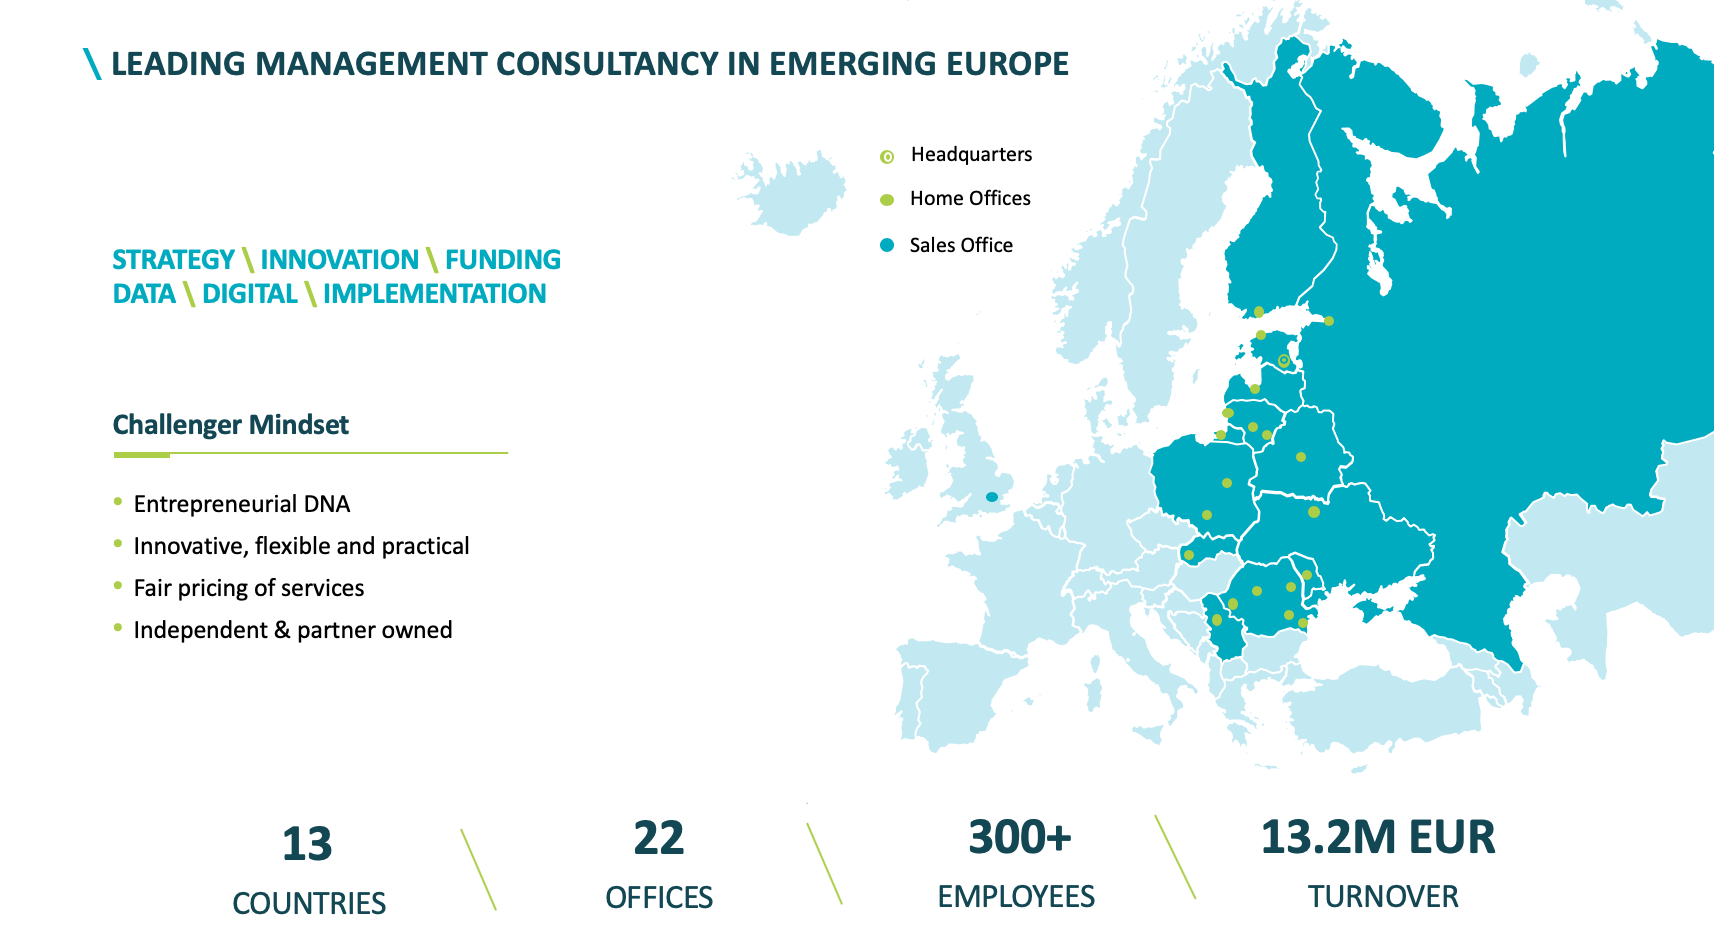 CIVITTA as a leading management consultancy in emerging Europe